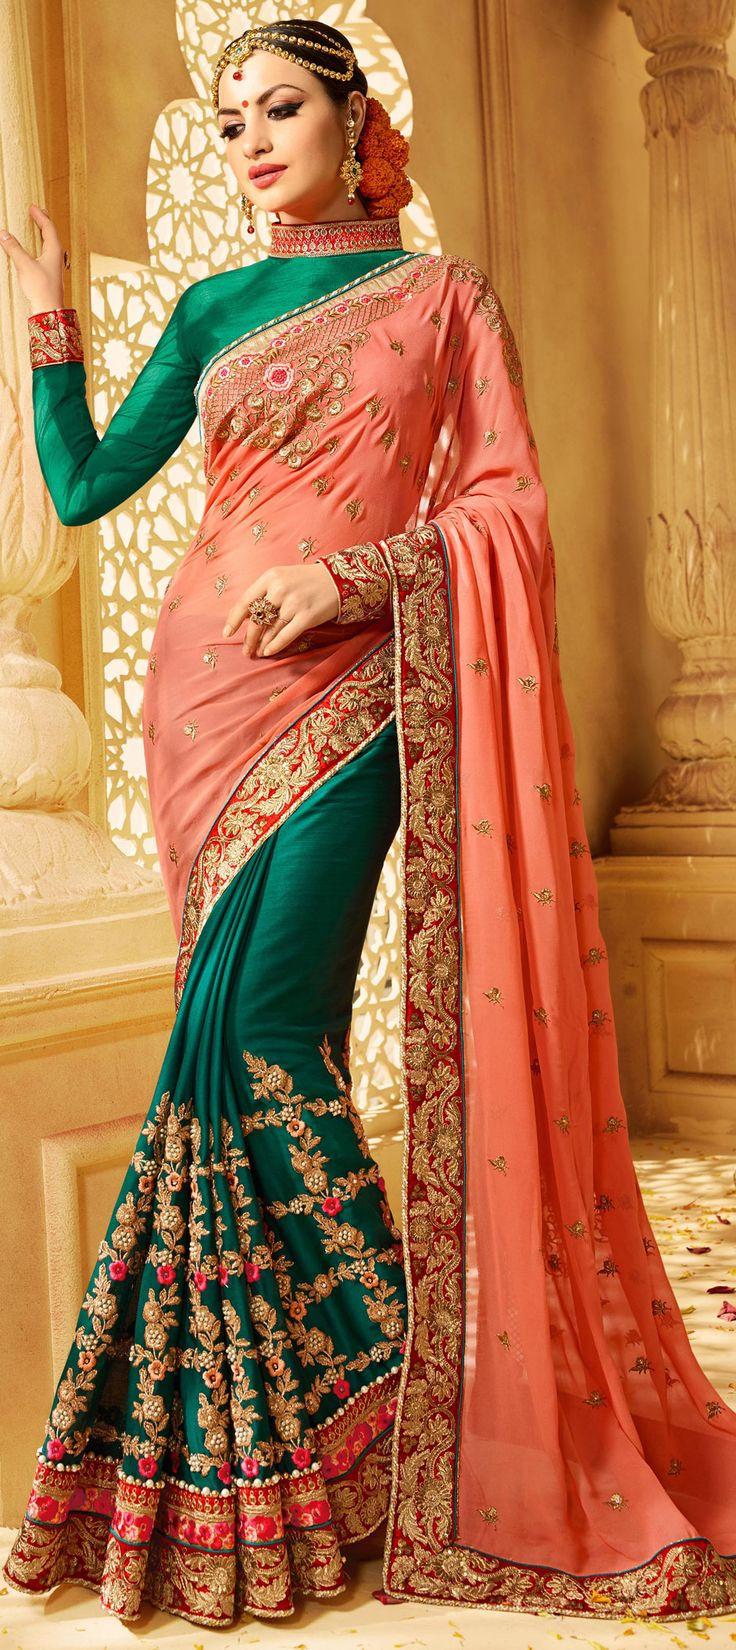 741598 Green, Pink and Majenta  color family Embroidered Sarees, Party Wear Sarees in Georgette, Jacquard fabric with Machine Embroidery, Moti, Patch, Thread, Zari work   with matching unstitched blouse.